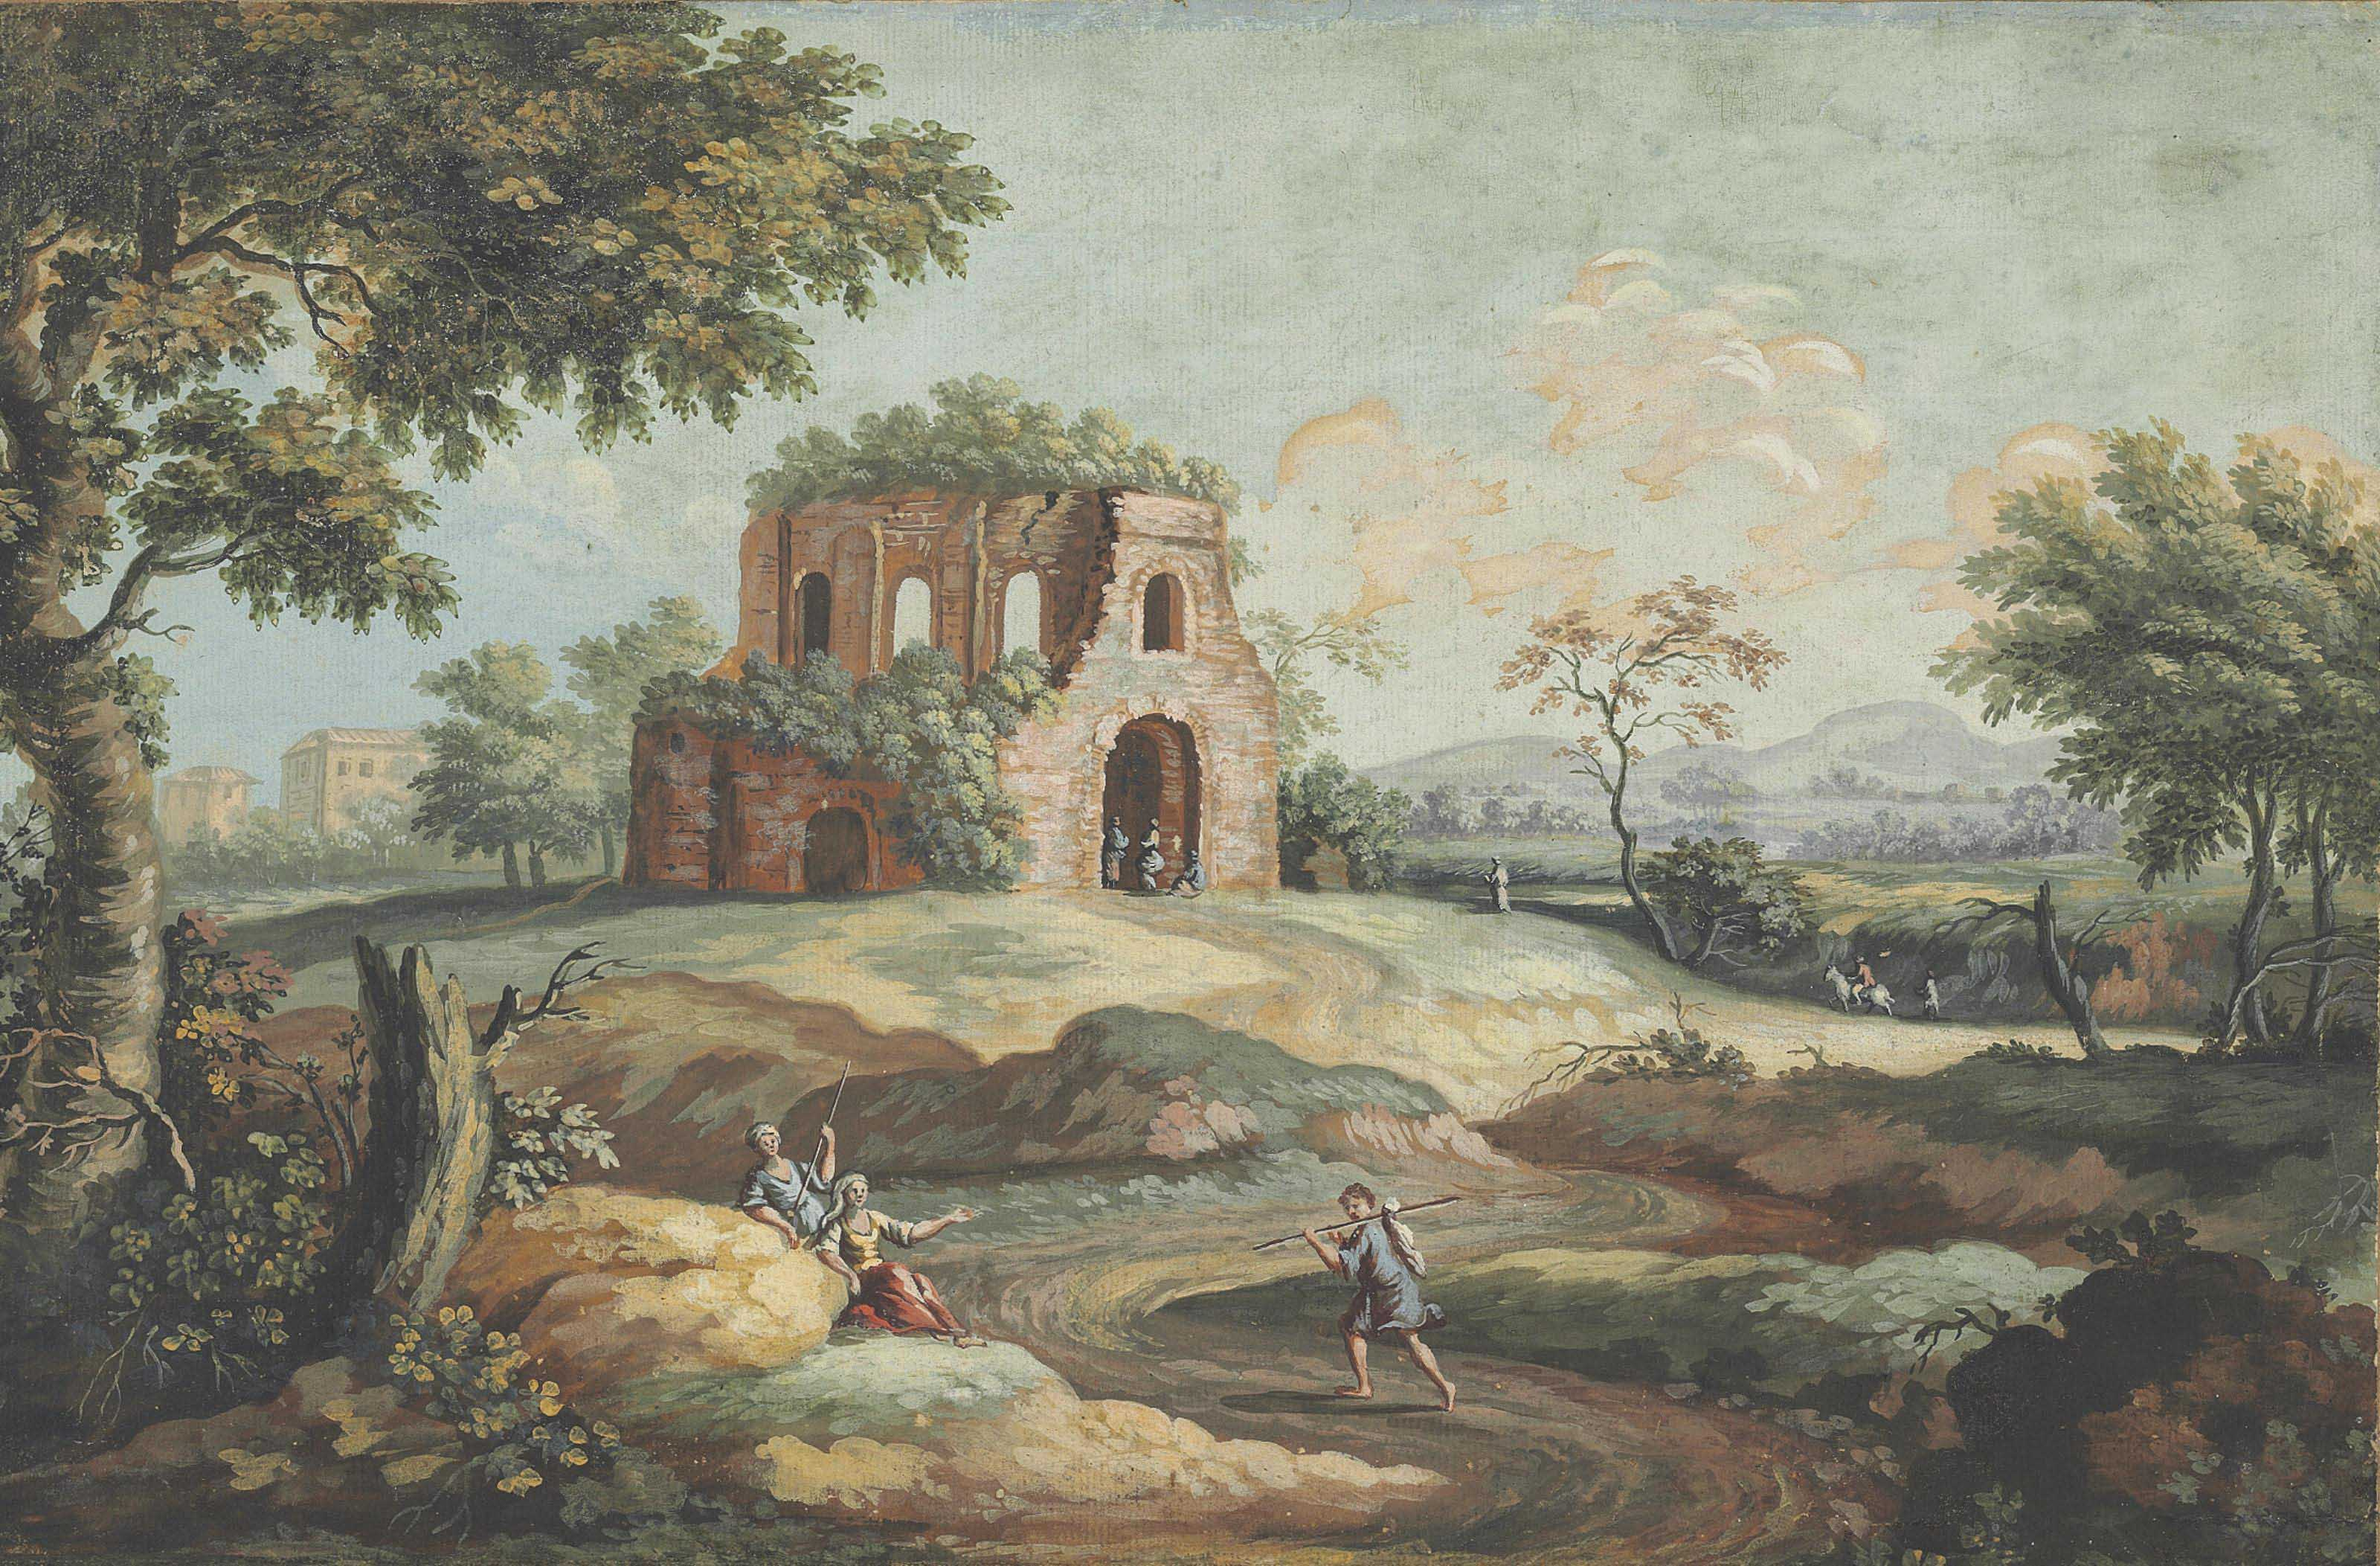 The Temple ofMinerva Medica in a classical landscape